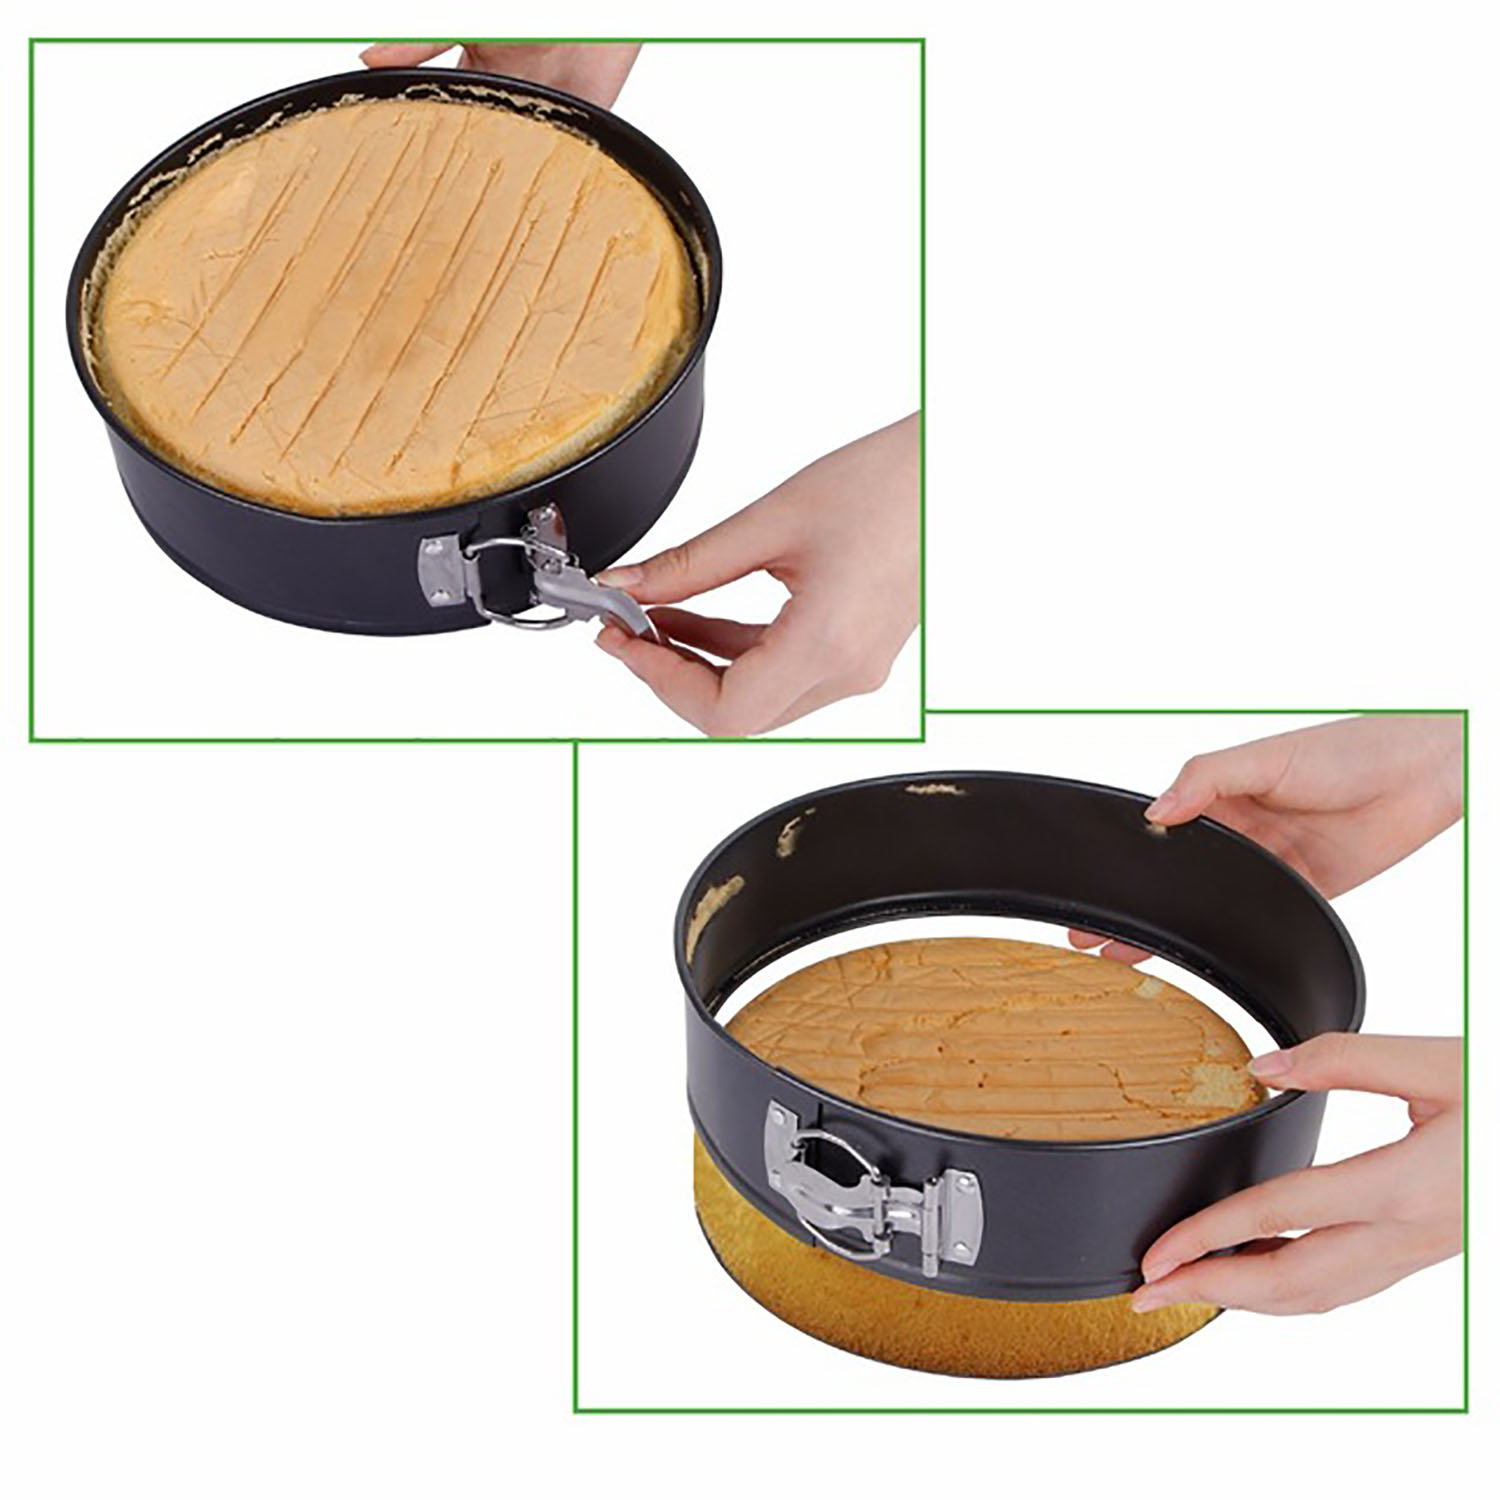 Cake Pans, Outgeek Stainless Steel Round Springform Round Non-stick Leakproof Baking Pans Cheesecake Pans... by Outgeek